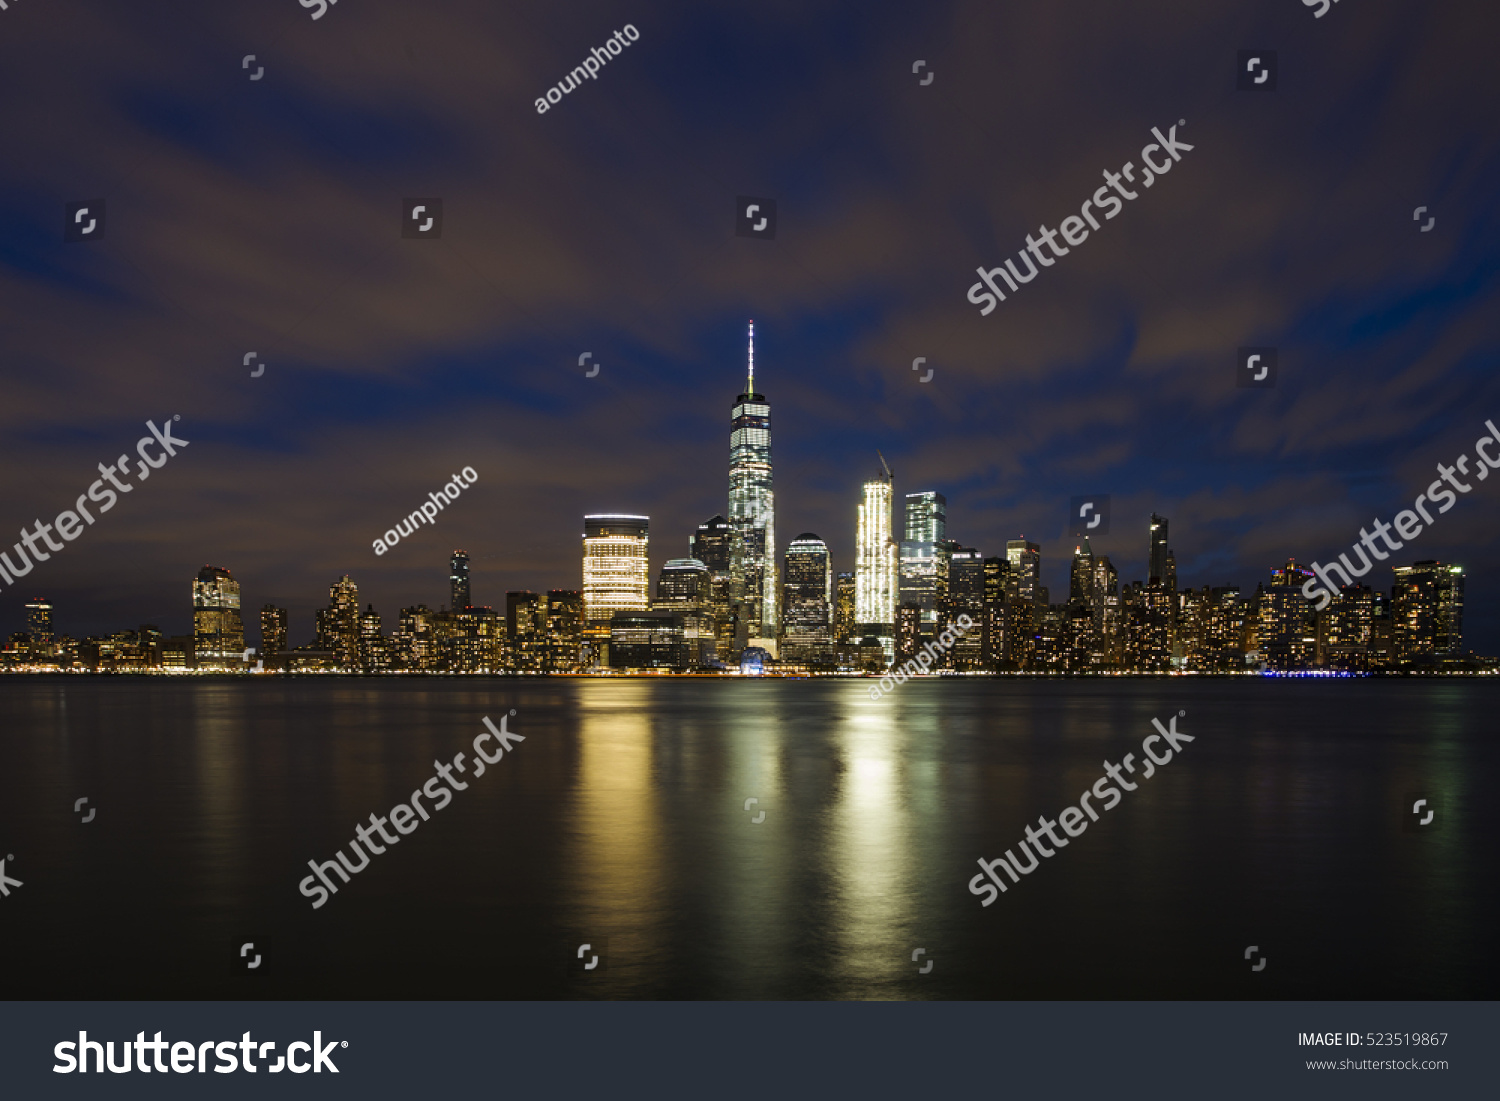 Nice view in New York City after sunset